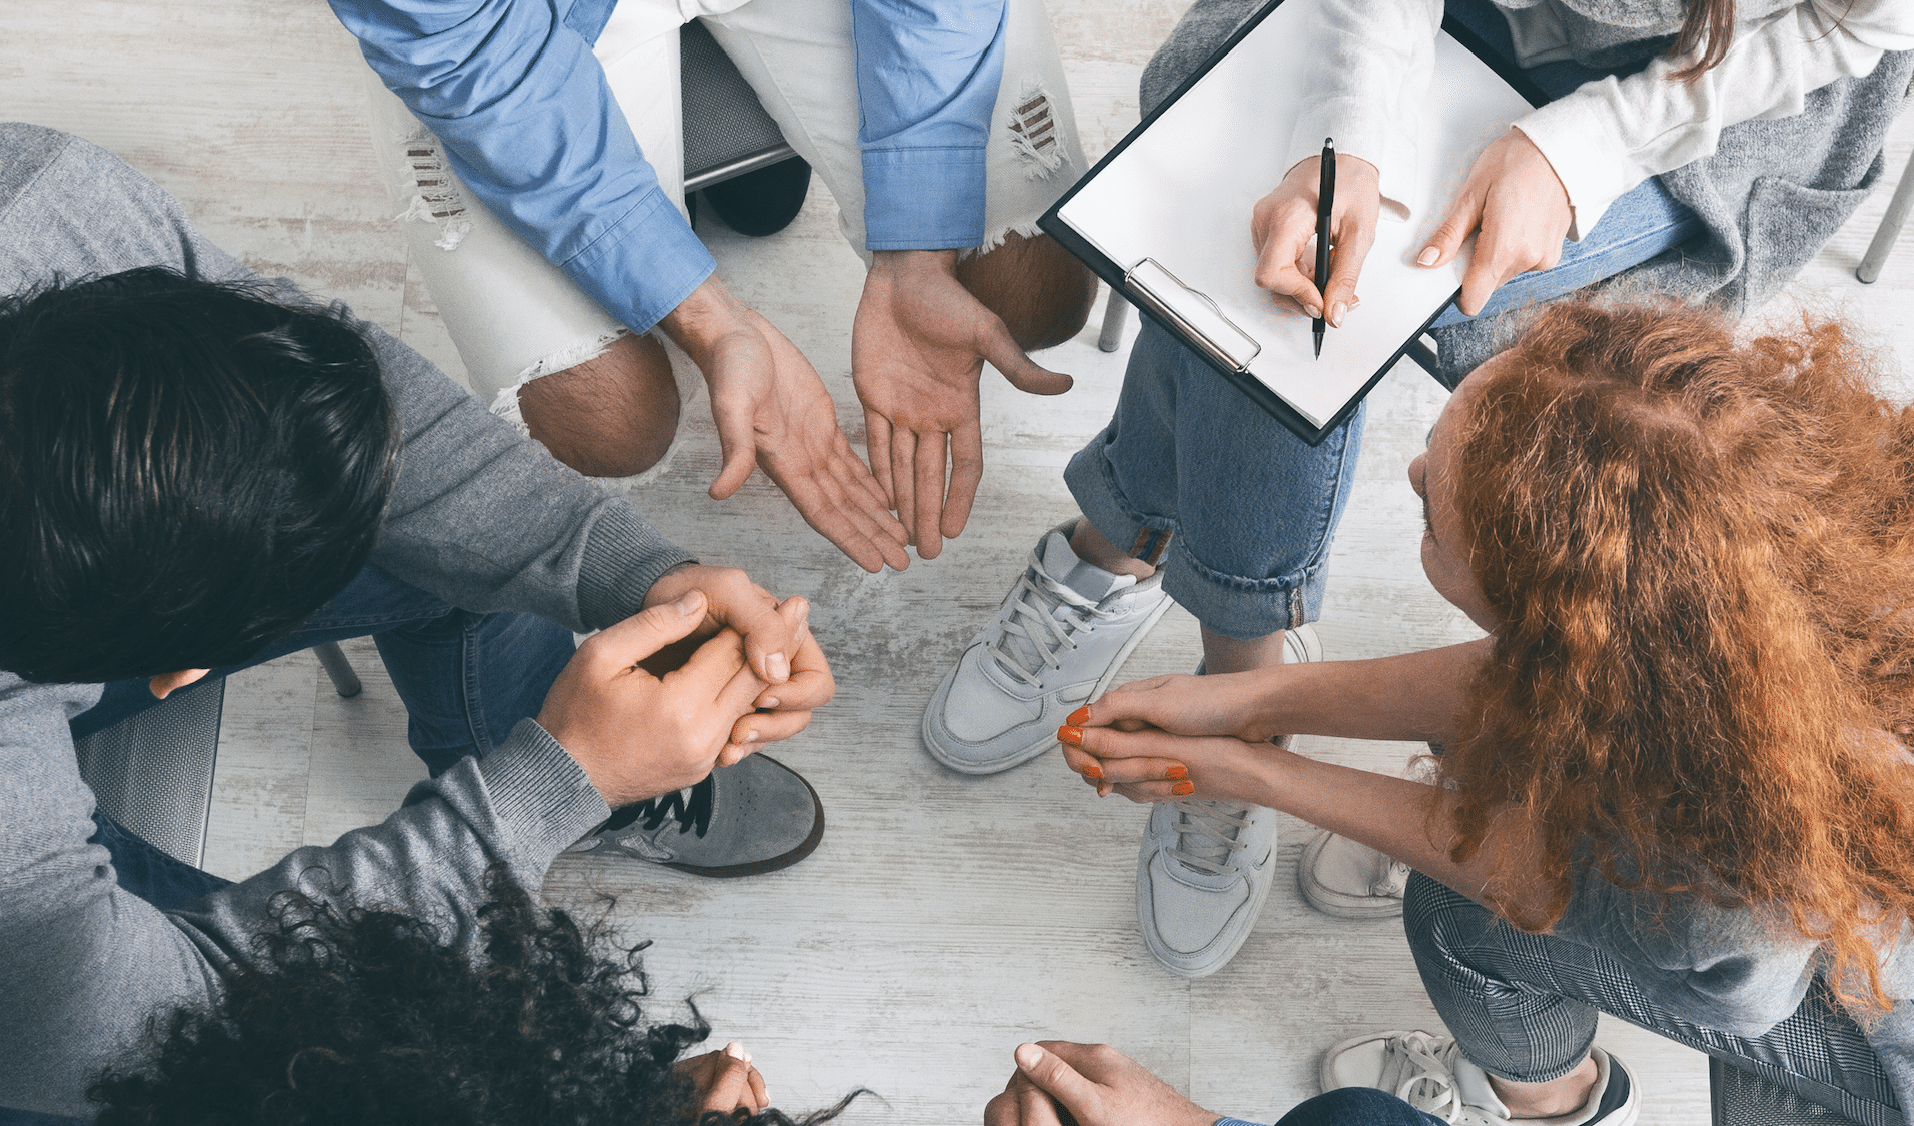 Diverse people sharing their problems at group therapy session, top view